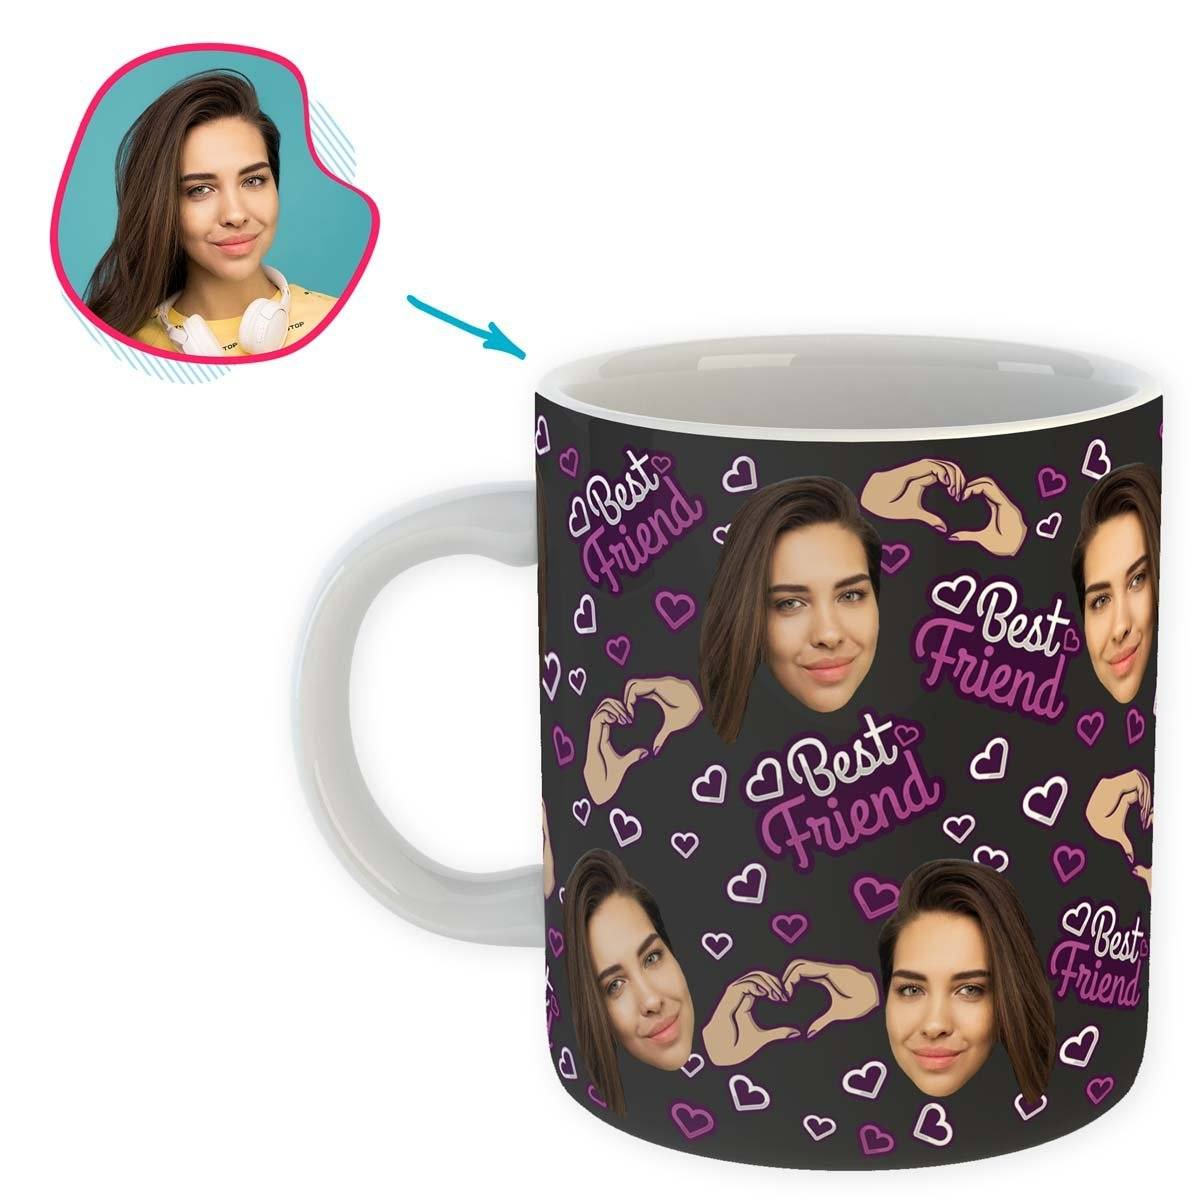 dark BFF for Her mug personalized with photo of face printed on it